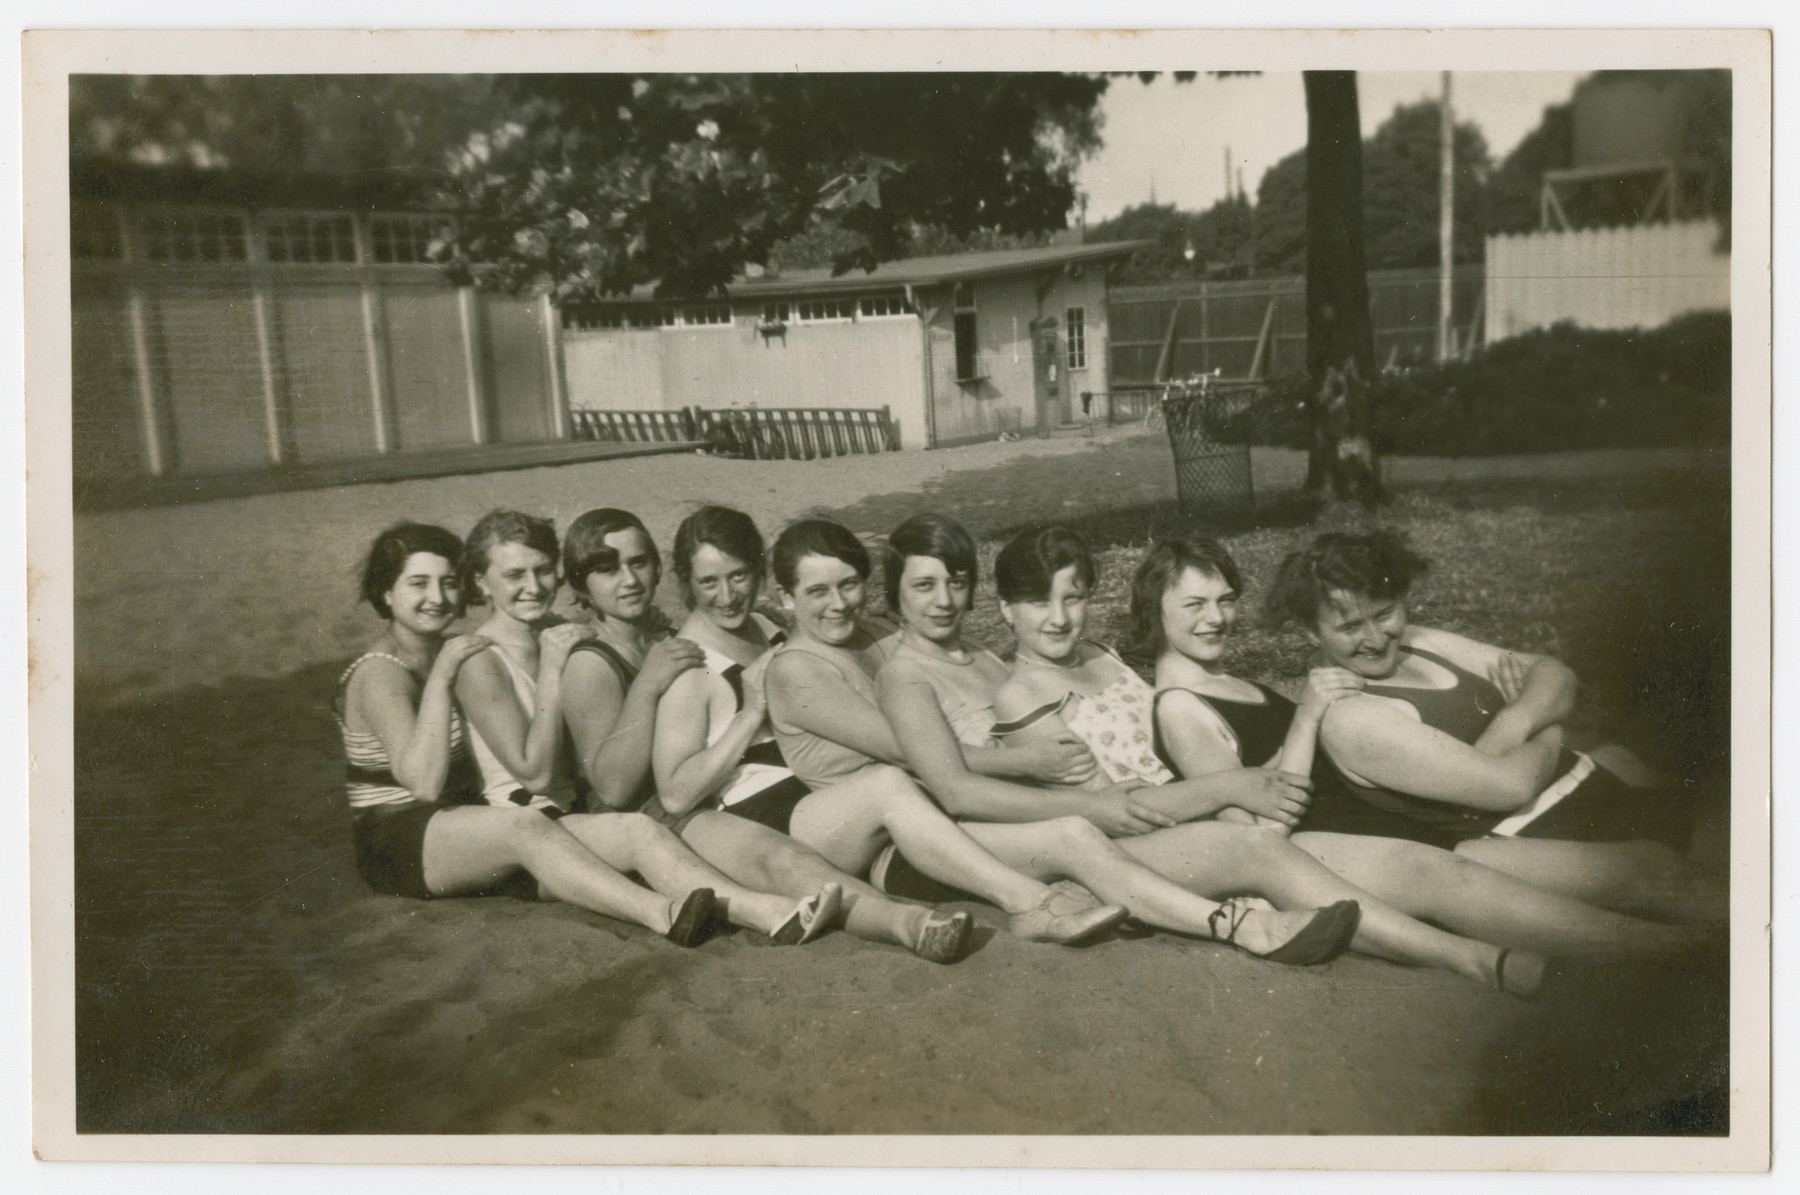 Gretel Kleeblatt (far left) poses with friends (possibly co-workers from the Max Schmandt Ladies Millinery and Clothing firm)  at the women's bathing establishment on the River Oker in Braunschweig.